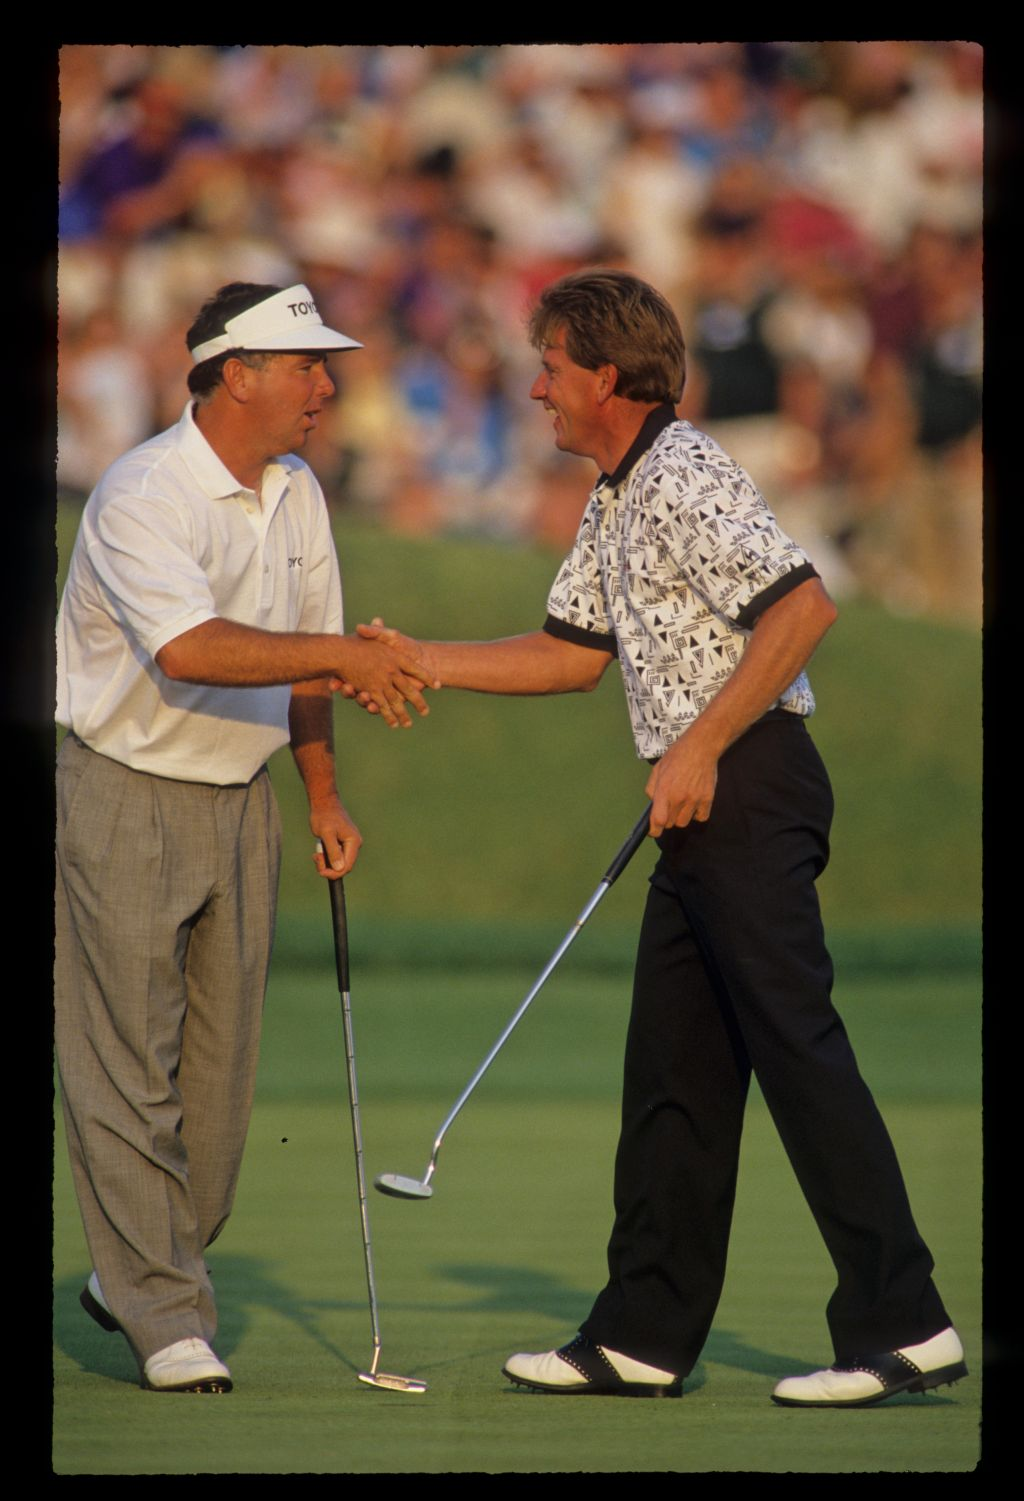 Nick Price being congratulated by Mark O'Meara after winning the 1993 TPC